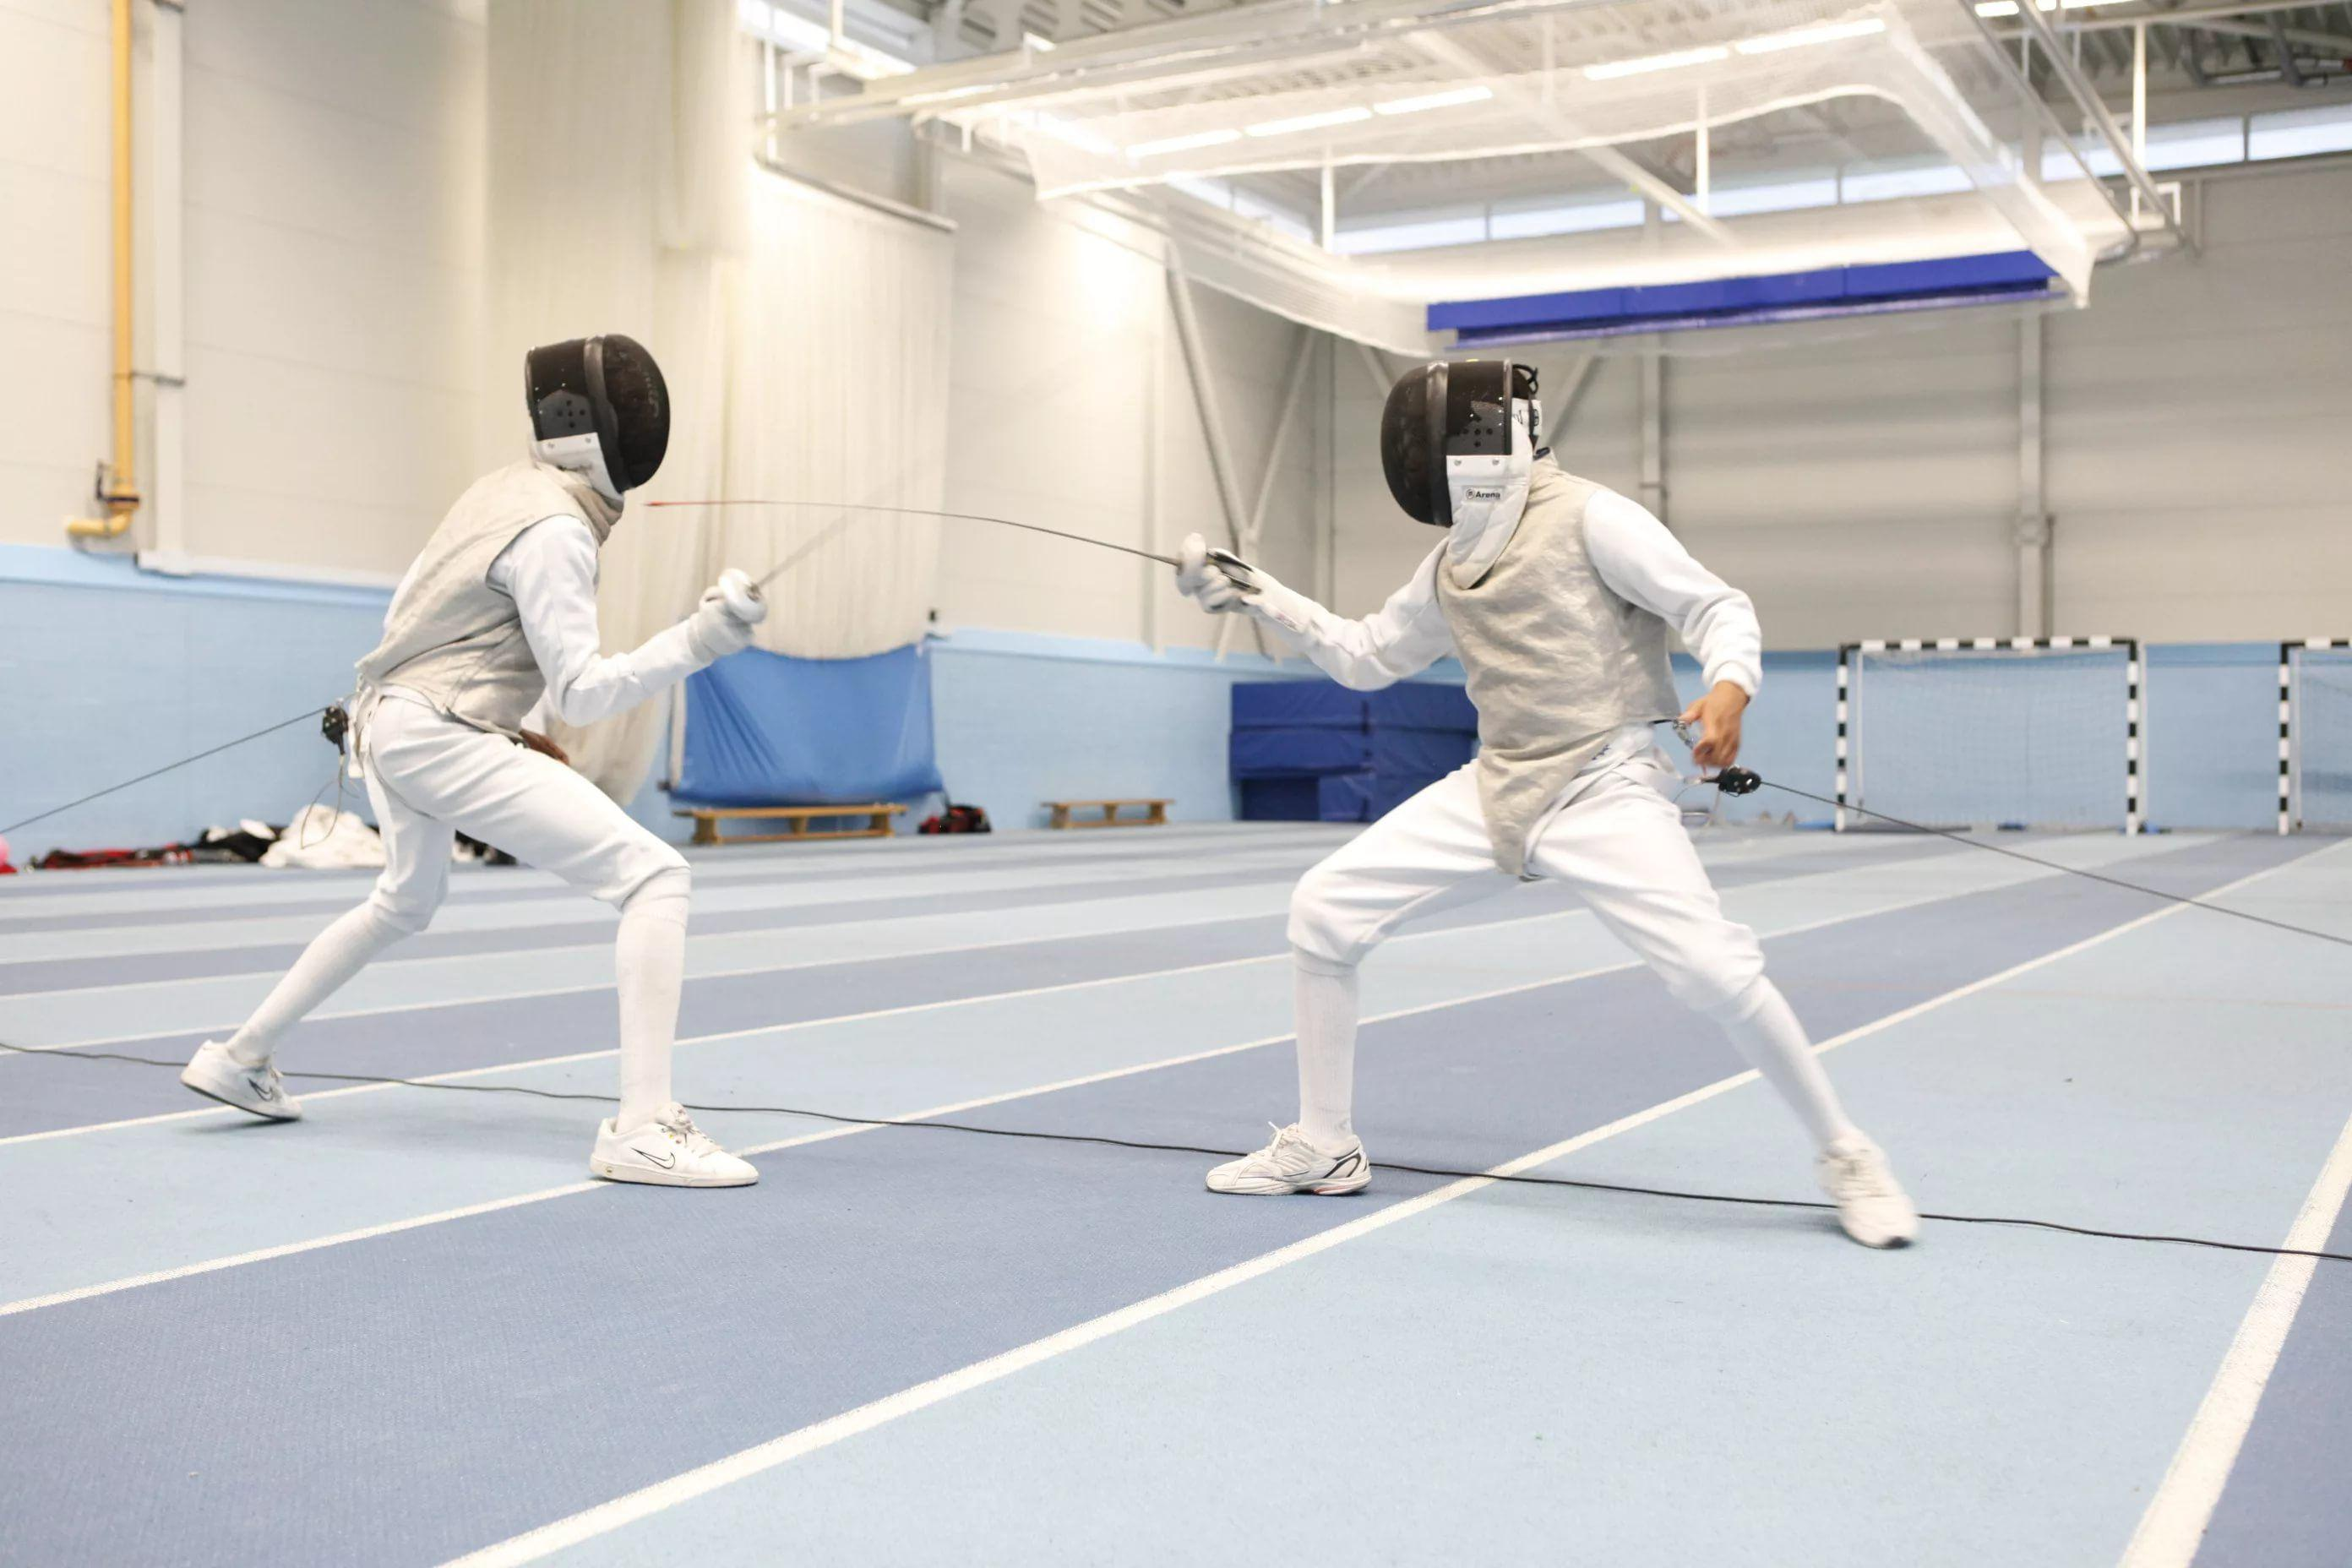 Fencing Wallpaper.Aug Fencing 13 Wallpaper 1680x1050 Wallpaper ...